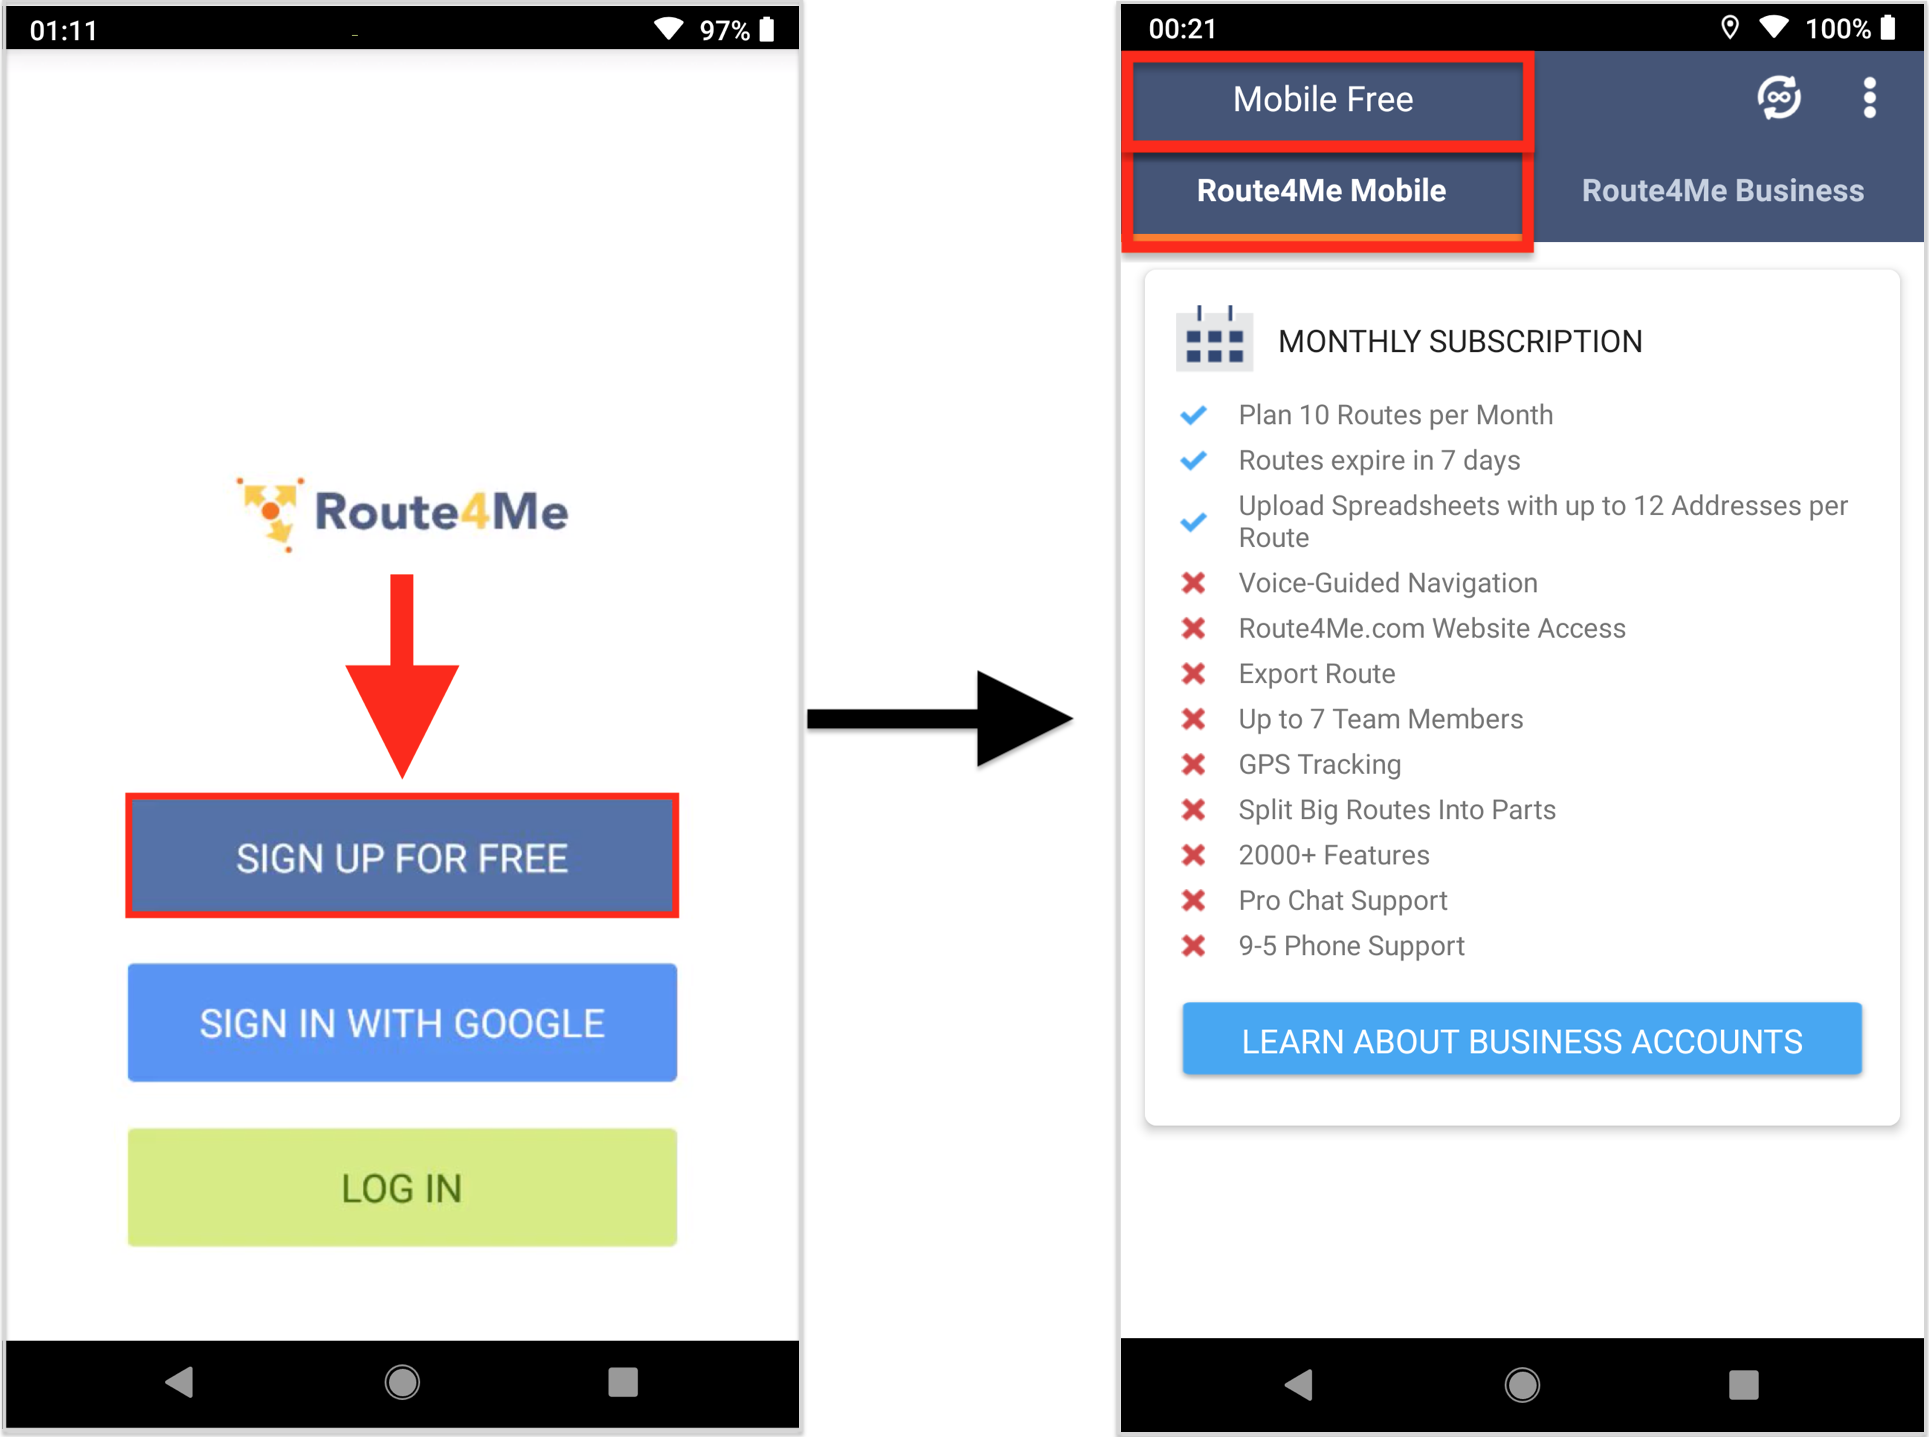 Understanding Route4Me Mobile Subscription Plans on Android Devices